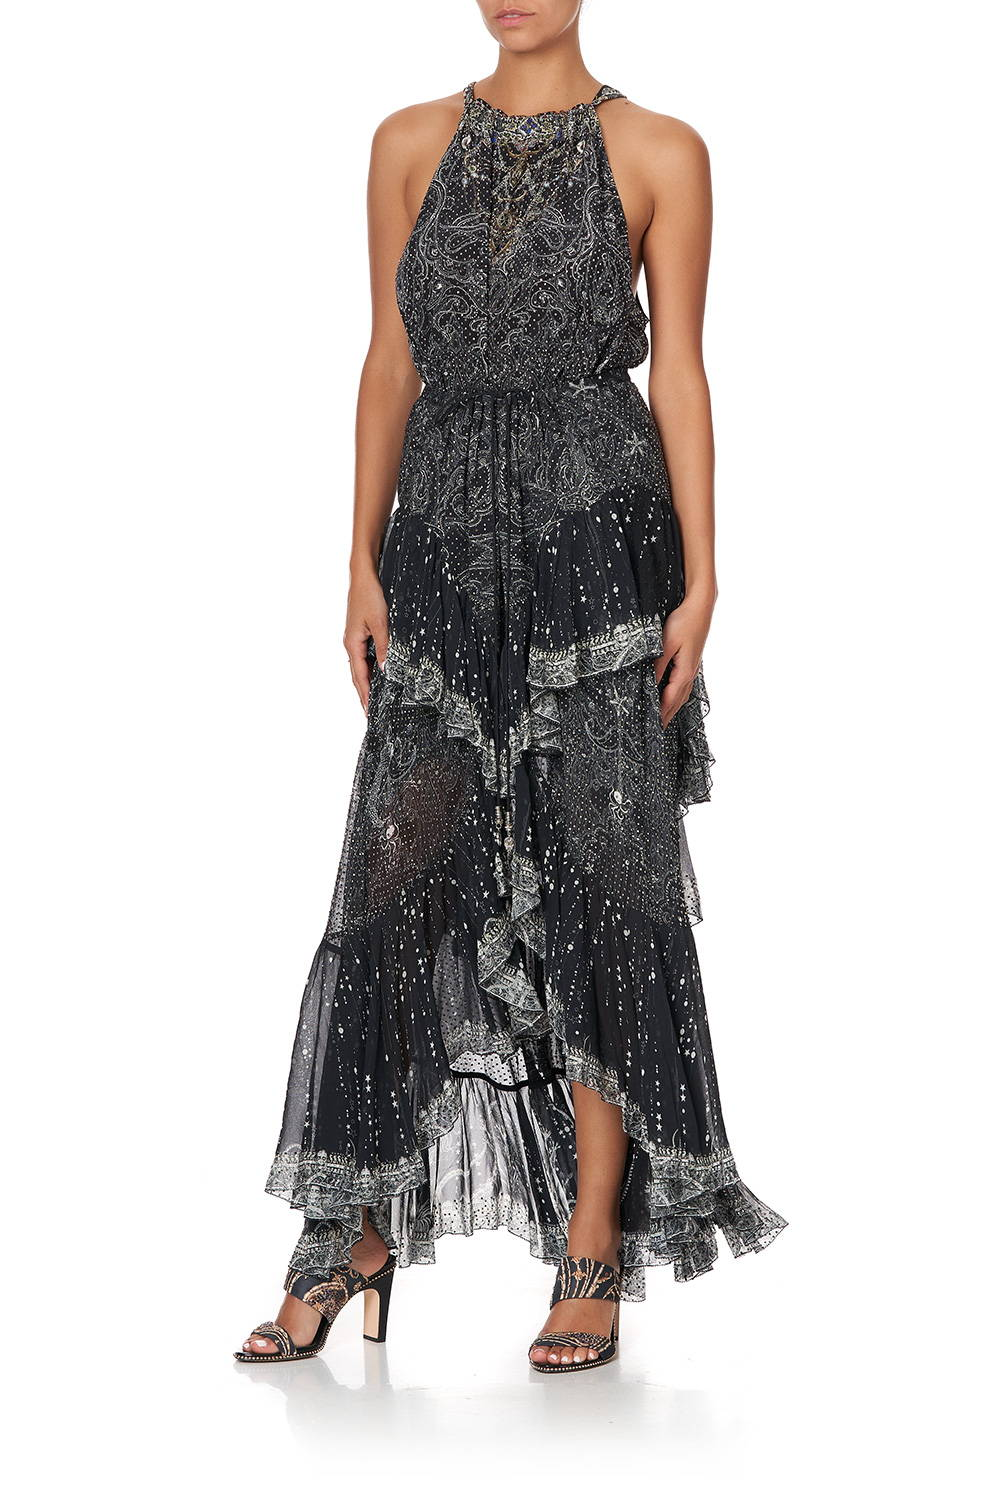 CAMILLA black and silver embellished maxi skirt with frills.